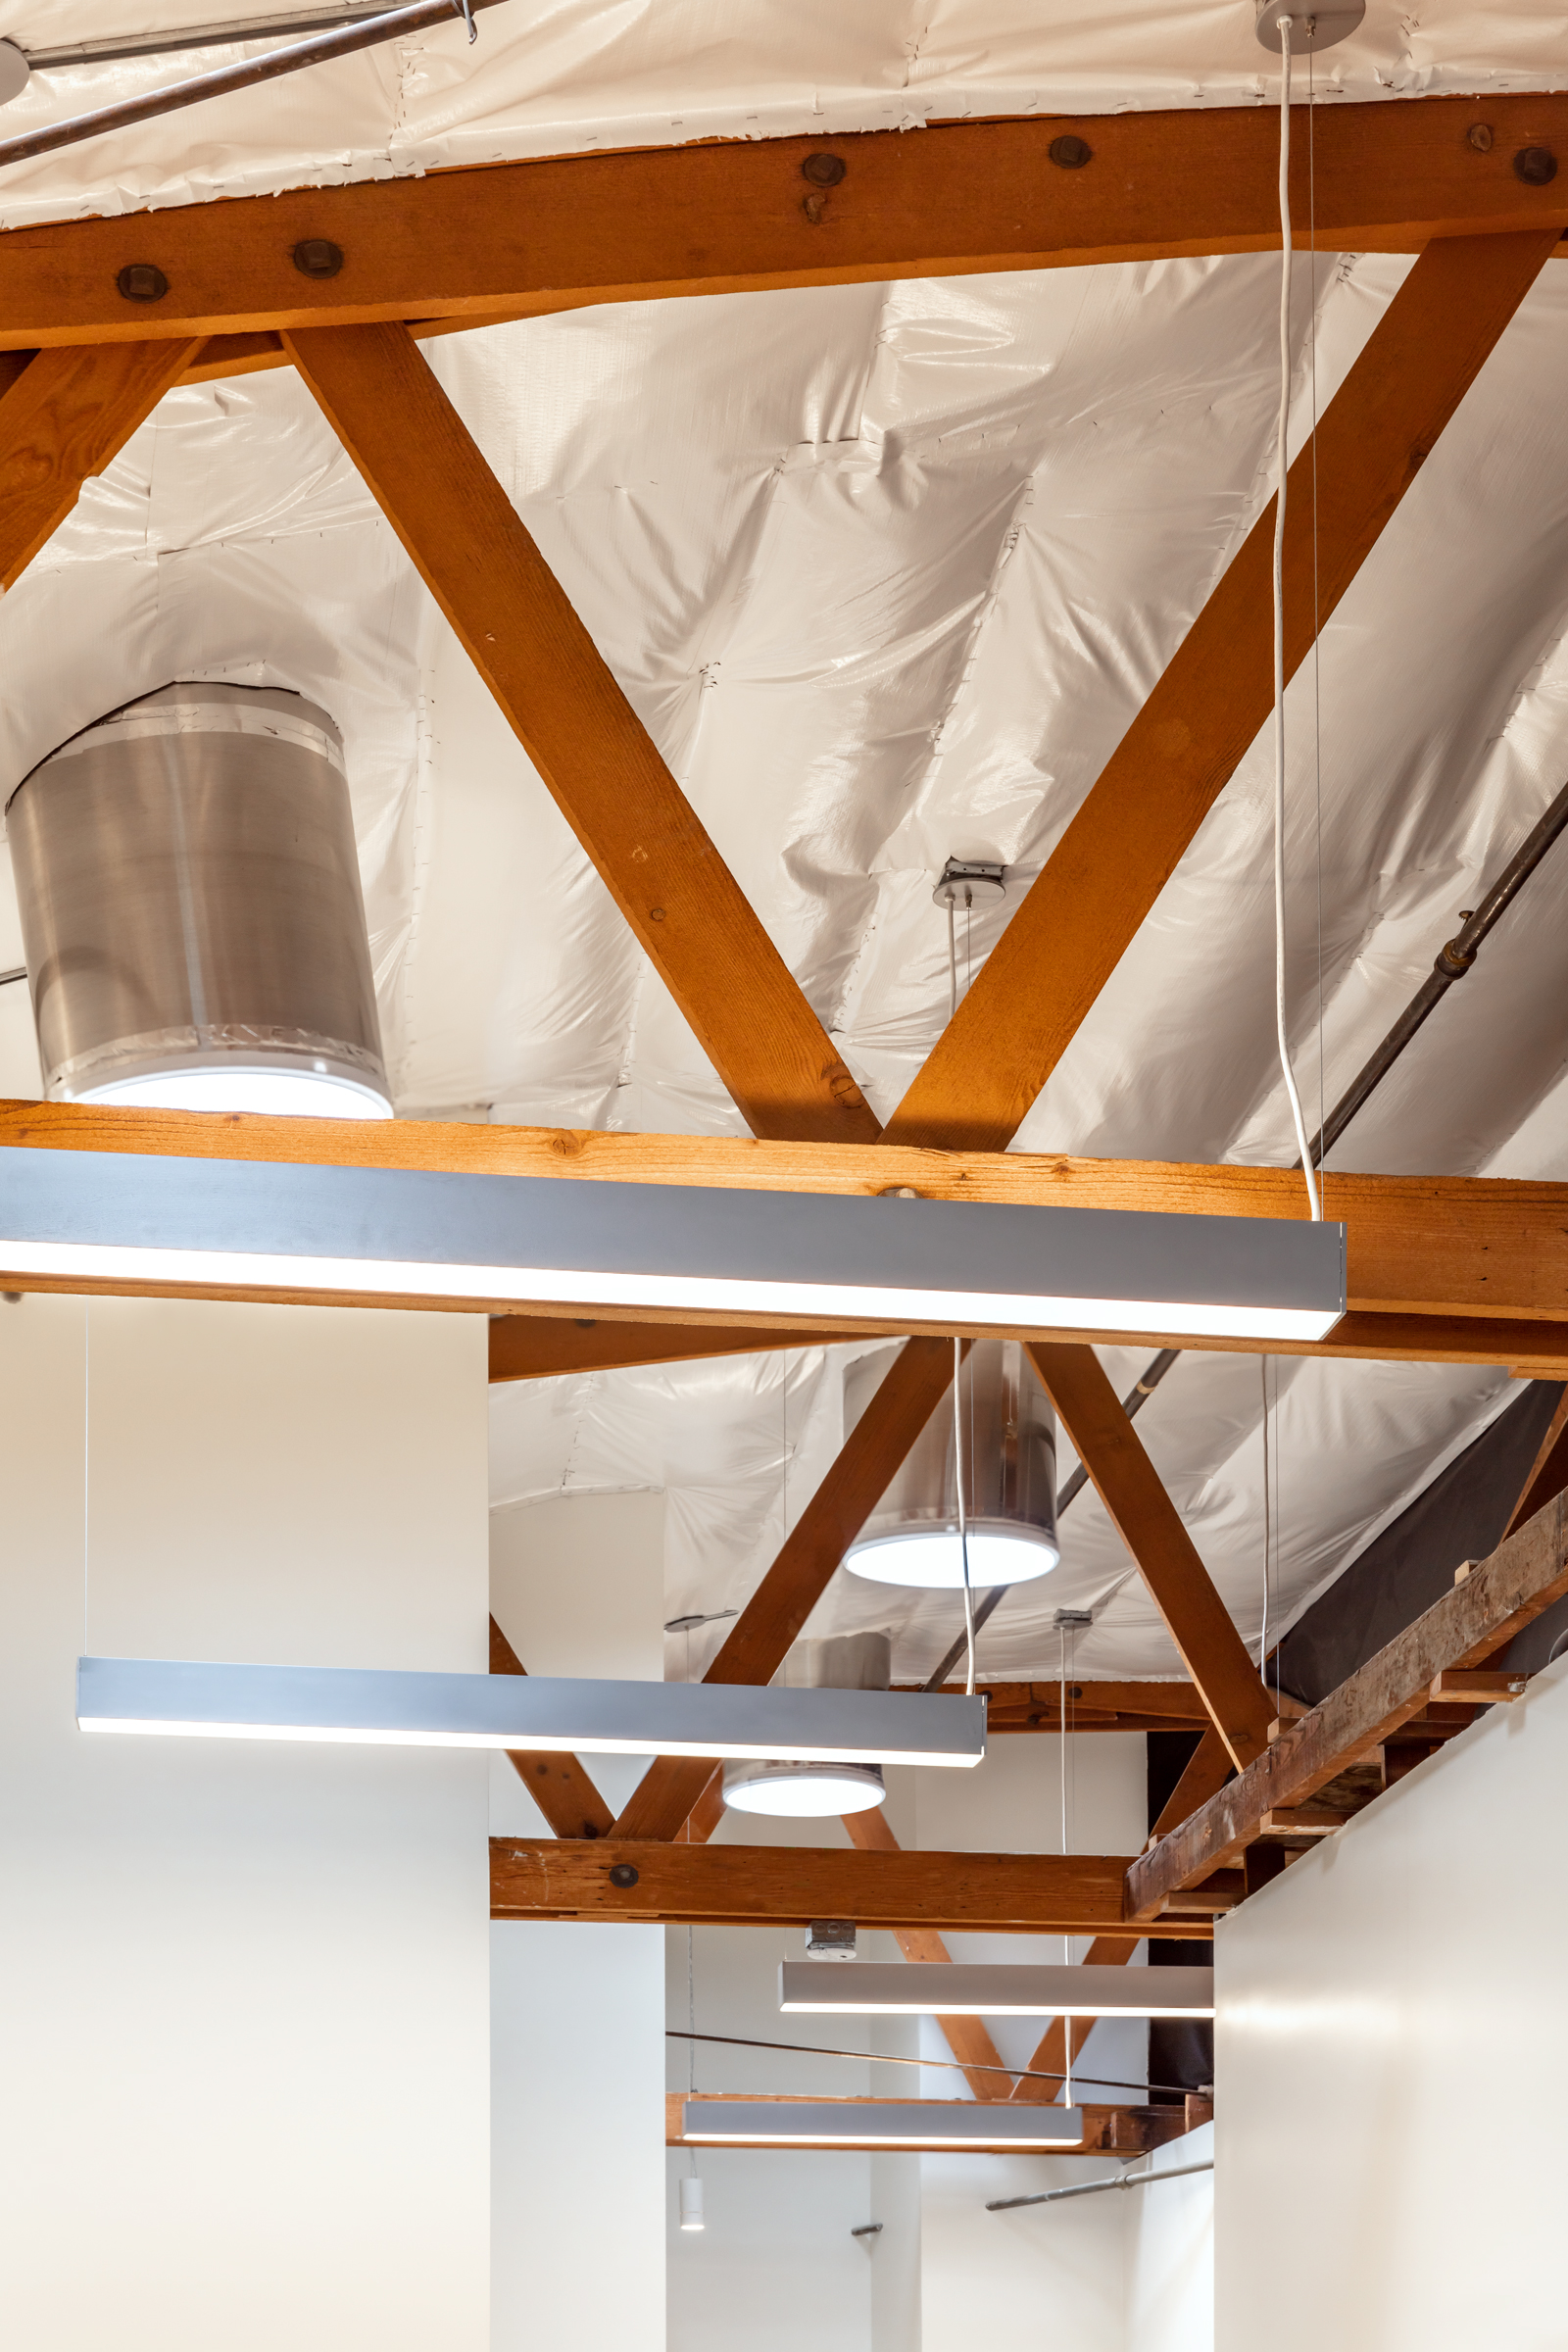 The removal of the dropped ceiling creates a dramatic verticality to the space, exposes the warmth of the existing wood bow trusses, and creates the opportunity to admit daylight via solatubes